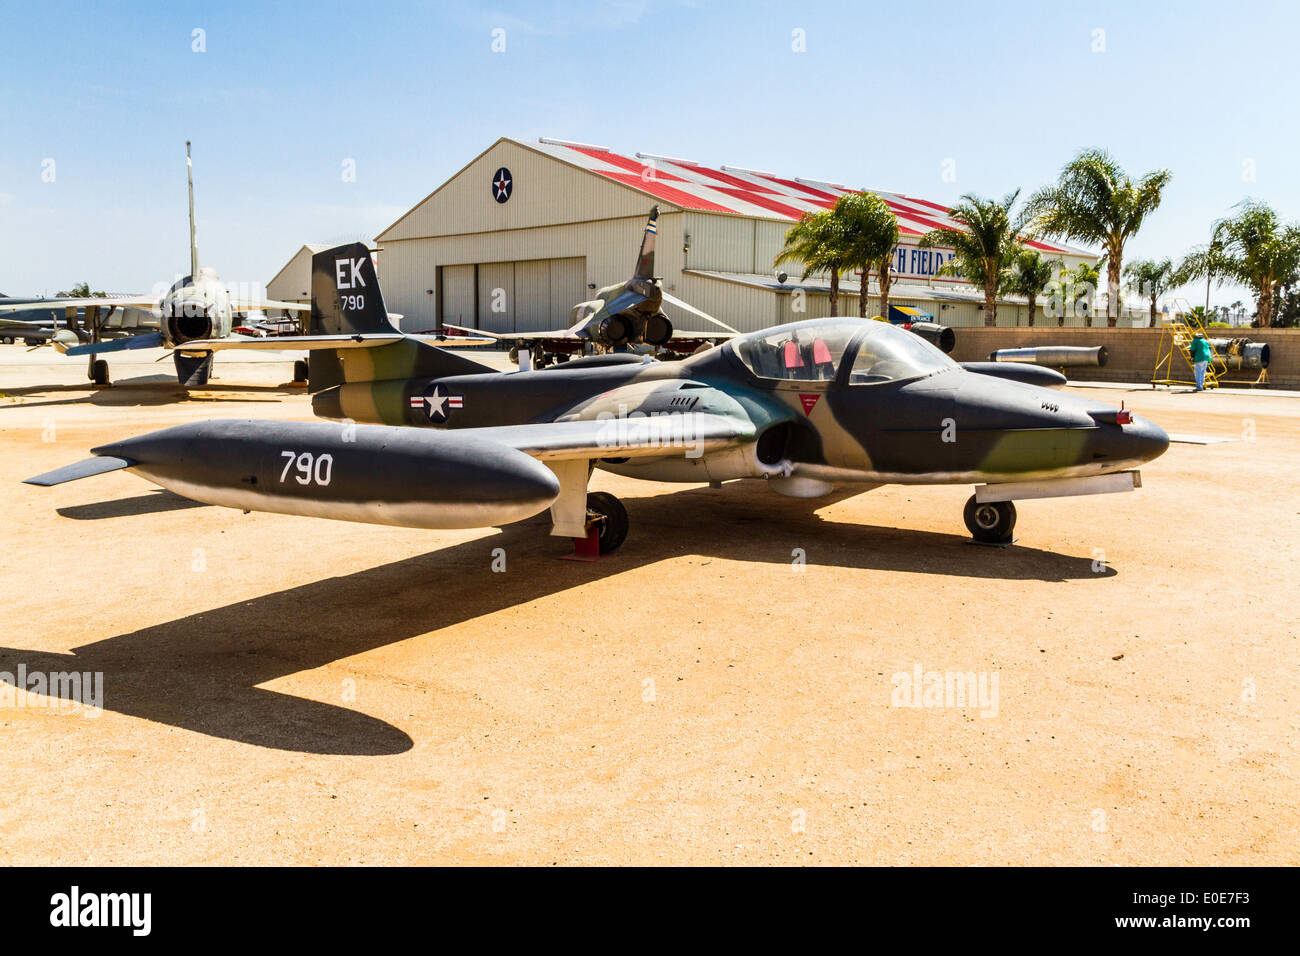 A Cessna T-37 at the March Field Air Museum in Riverside California - Stock Image